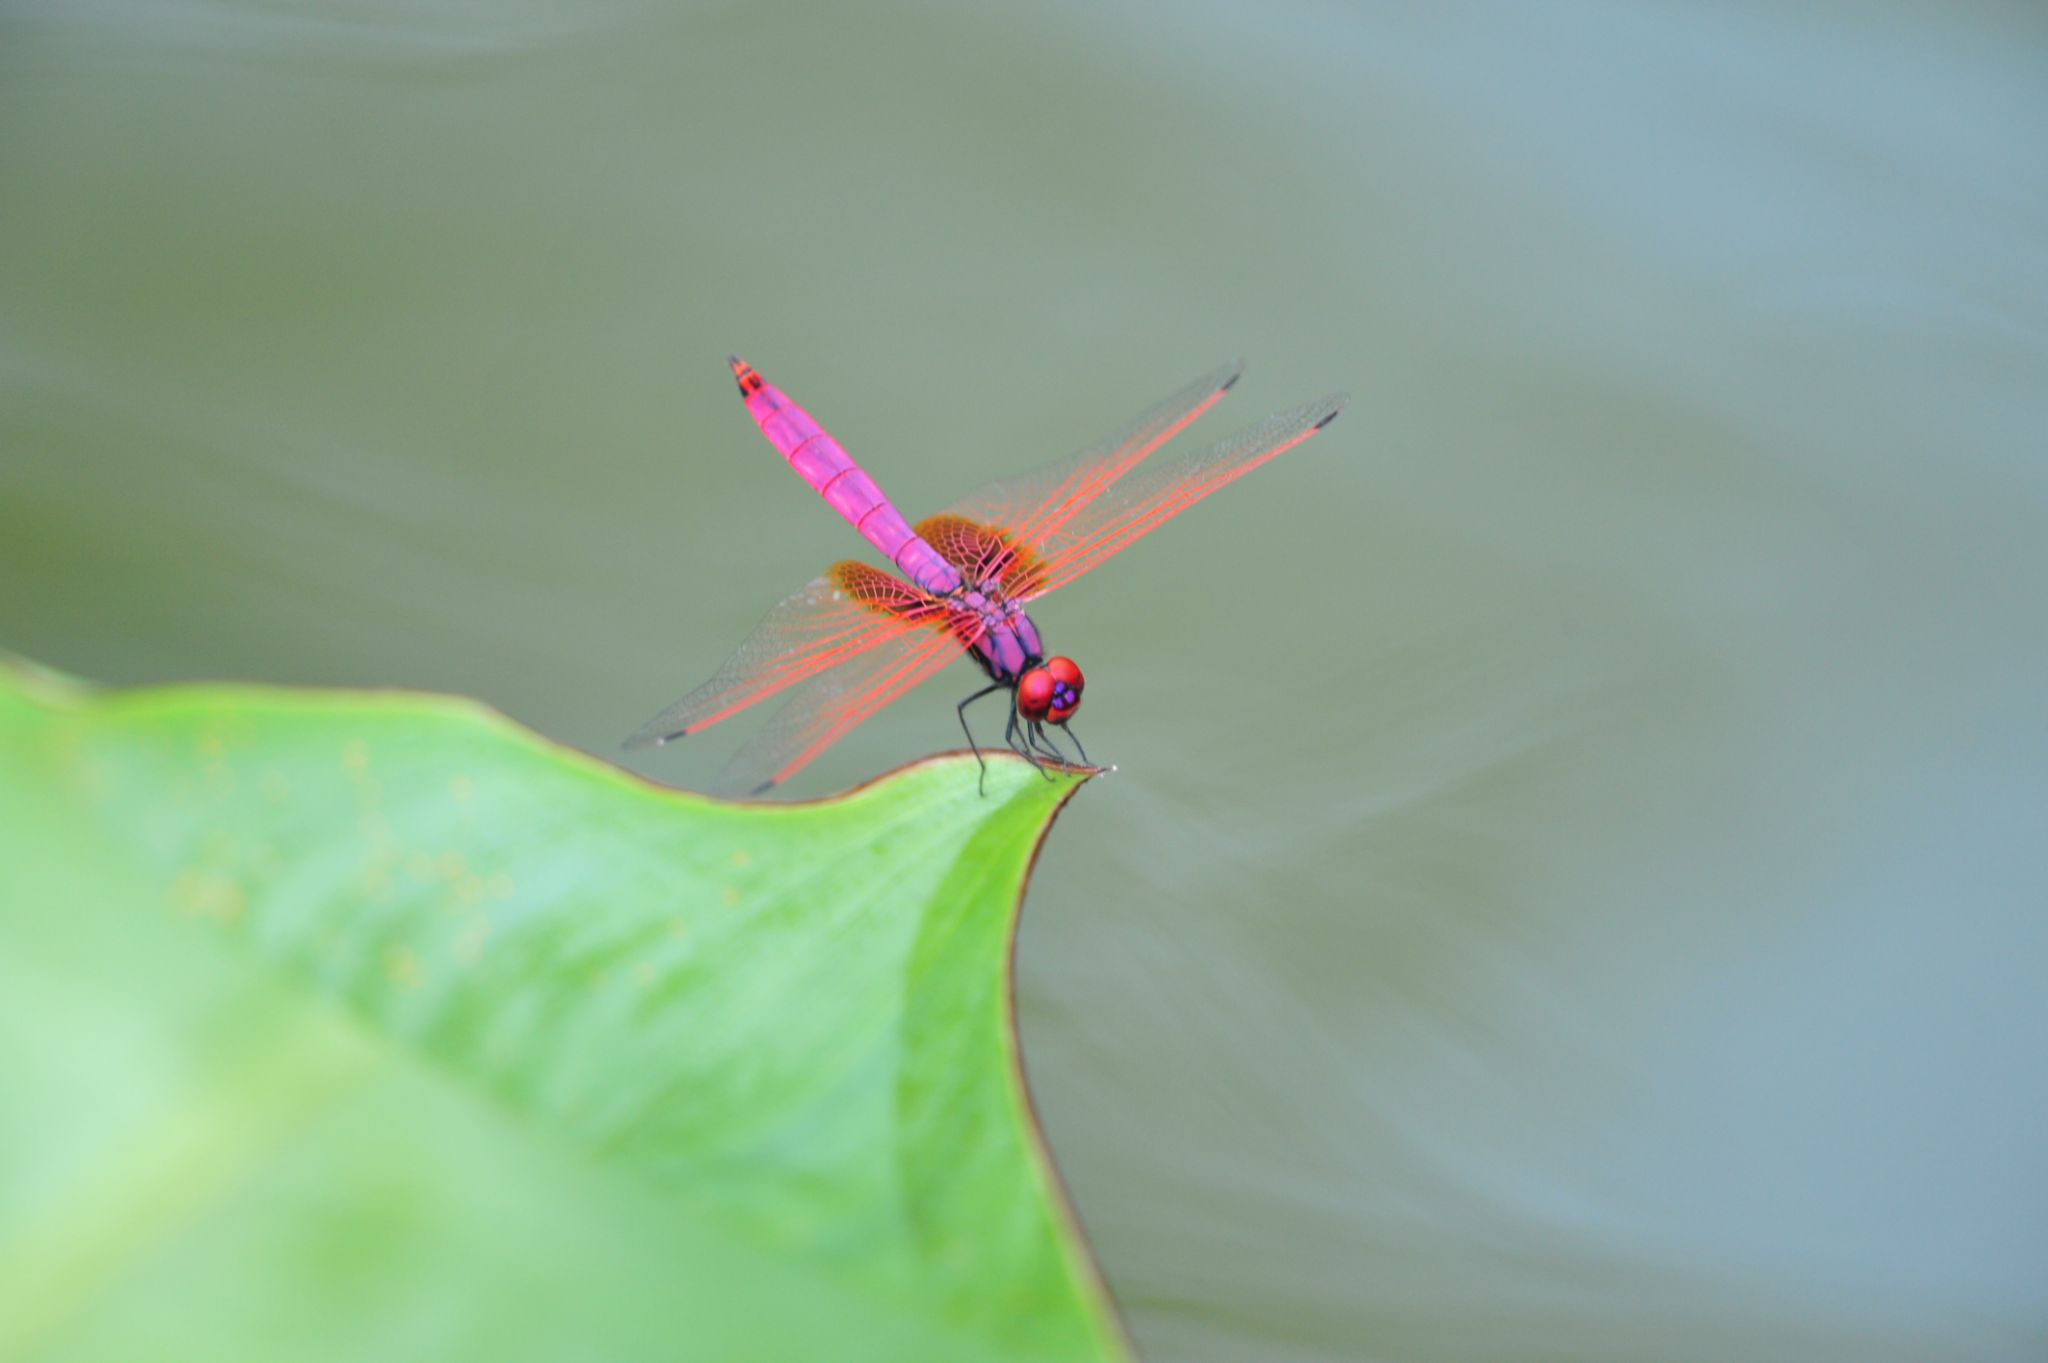 Dragon fly by Stanley Wong